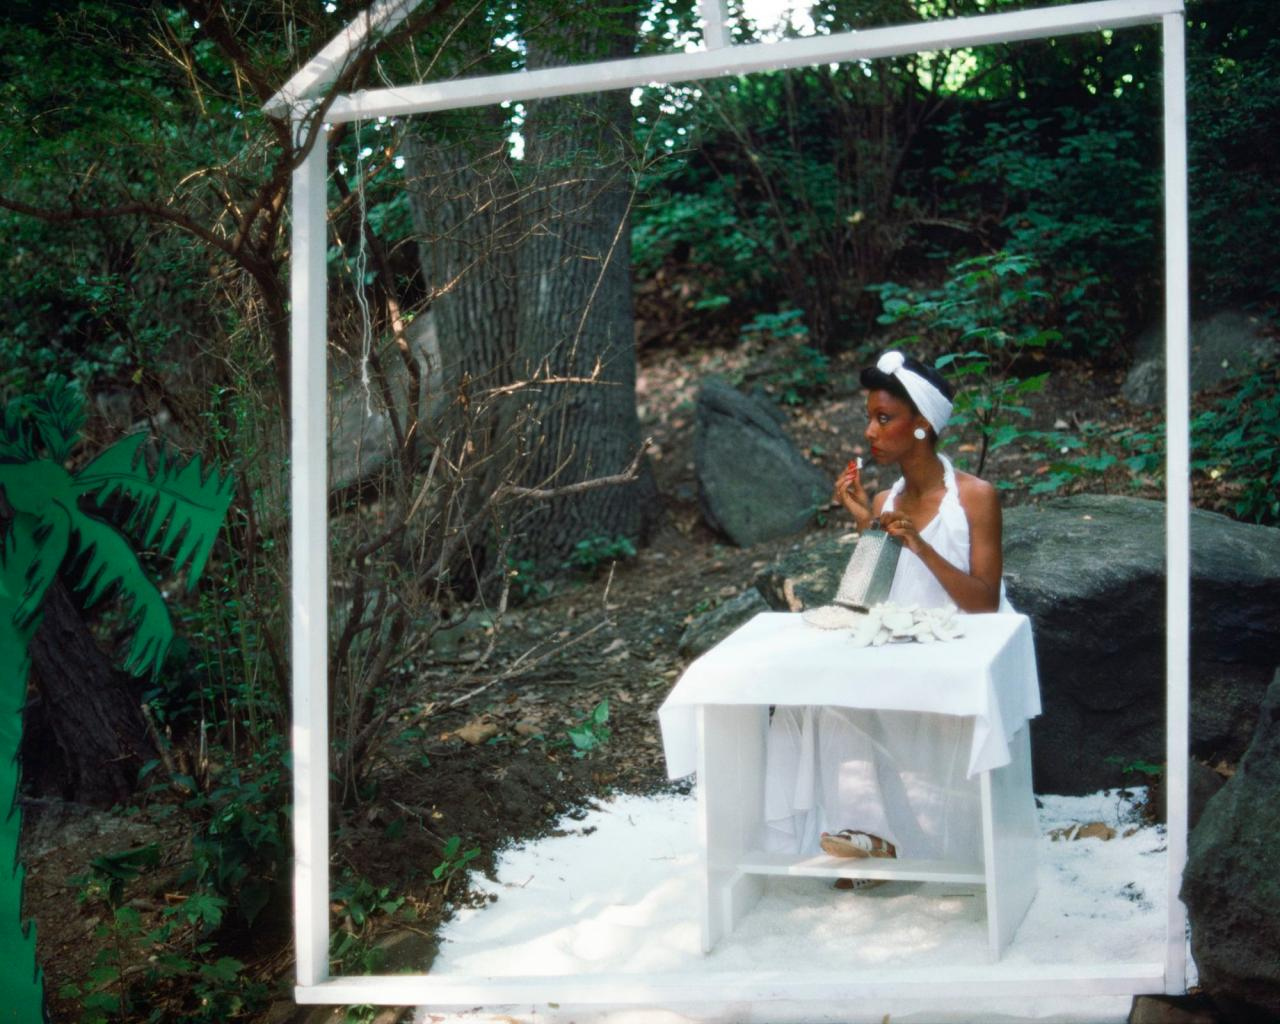 Lorraine O'Grady, Rivers, First Draft: The Woman in White eats coconut and looks away from the action , 1982/2015, digital chromogenic print from Kodachrome 35mm slides in 48 parts, 40× 50cm. Edition of 8 + 2 AP. Courtesy Alexander Gray Associates, New York. © Lorraine O'Grady/Artists Rights Society (ARS), New York